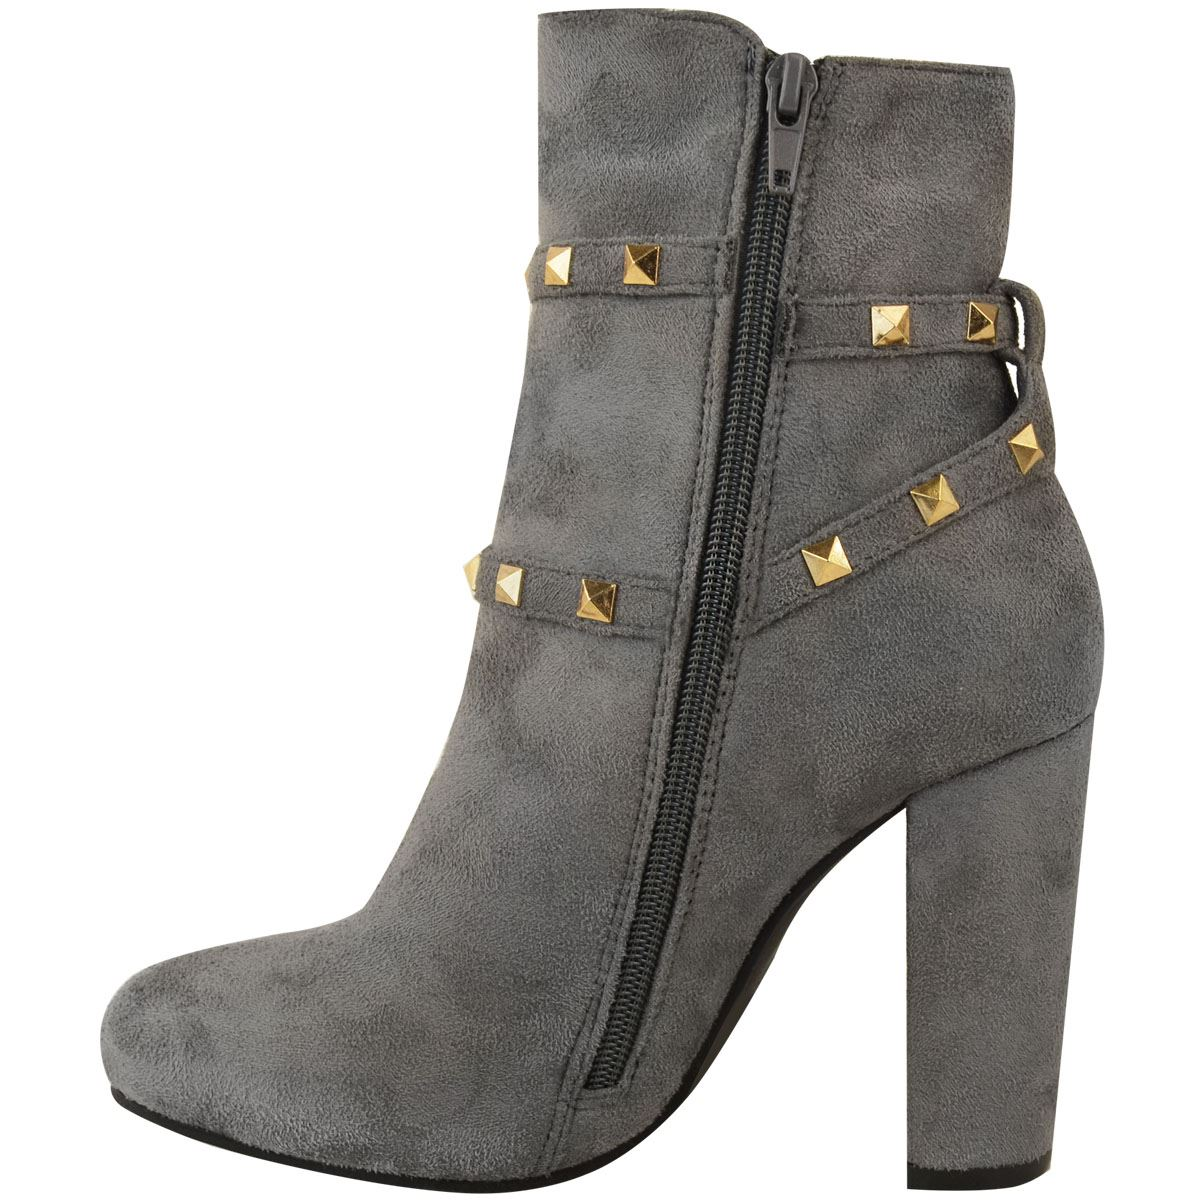 thumbnail 27 - WOMENS-LADIES-LOW-BLOCK-HEEL-CHELSEA-ANKLE-BOOTS-CUT-OUT-LACE-UP-SHOES-NEW-SIZE